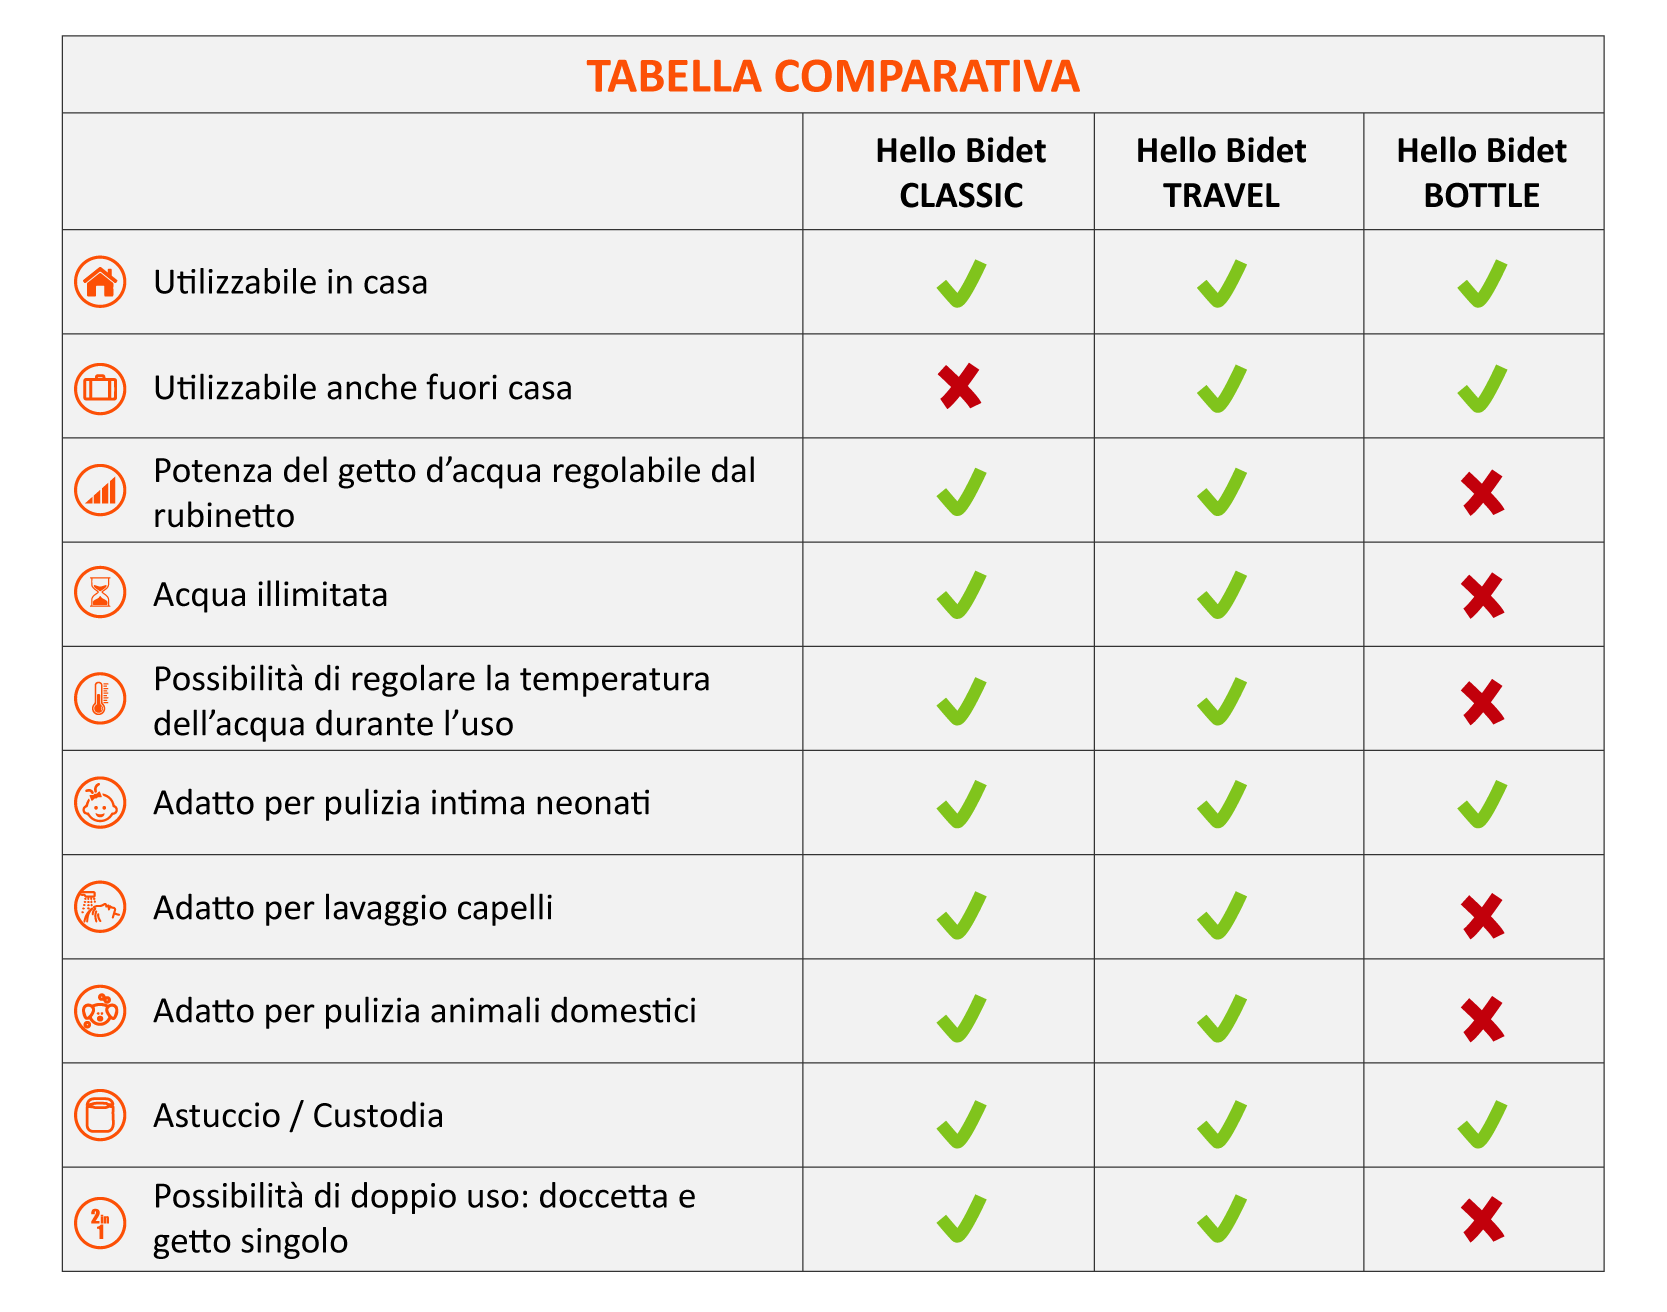 Tabella comparativa Hello Bidet Bottle